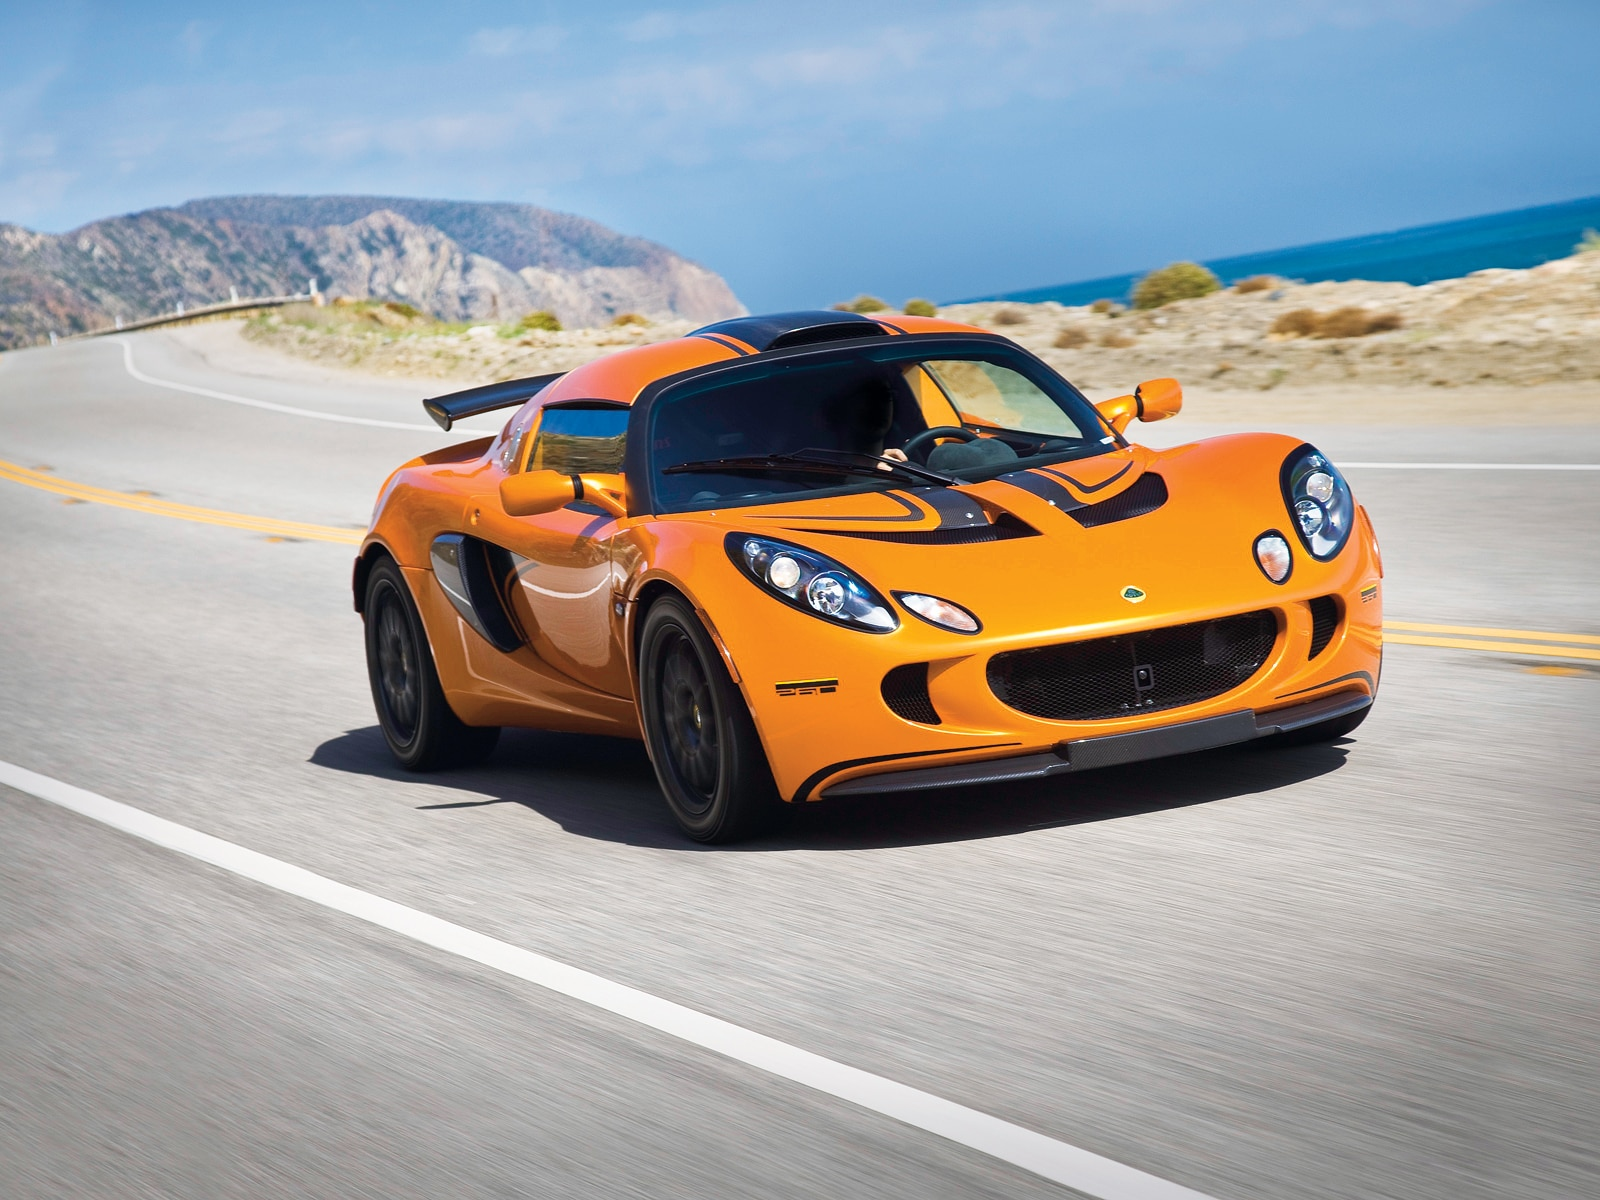 Lotus ExigeS 260 Sport  Lotus Exotic Sport Coupe Review